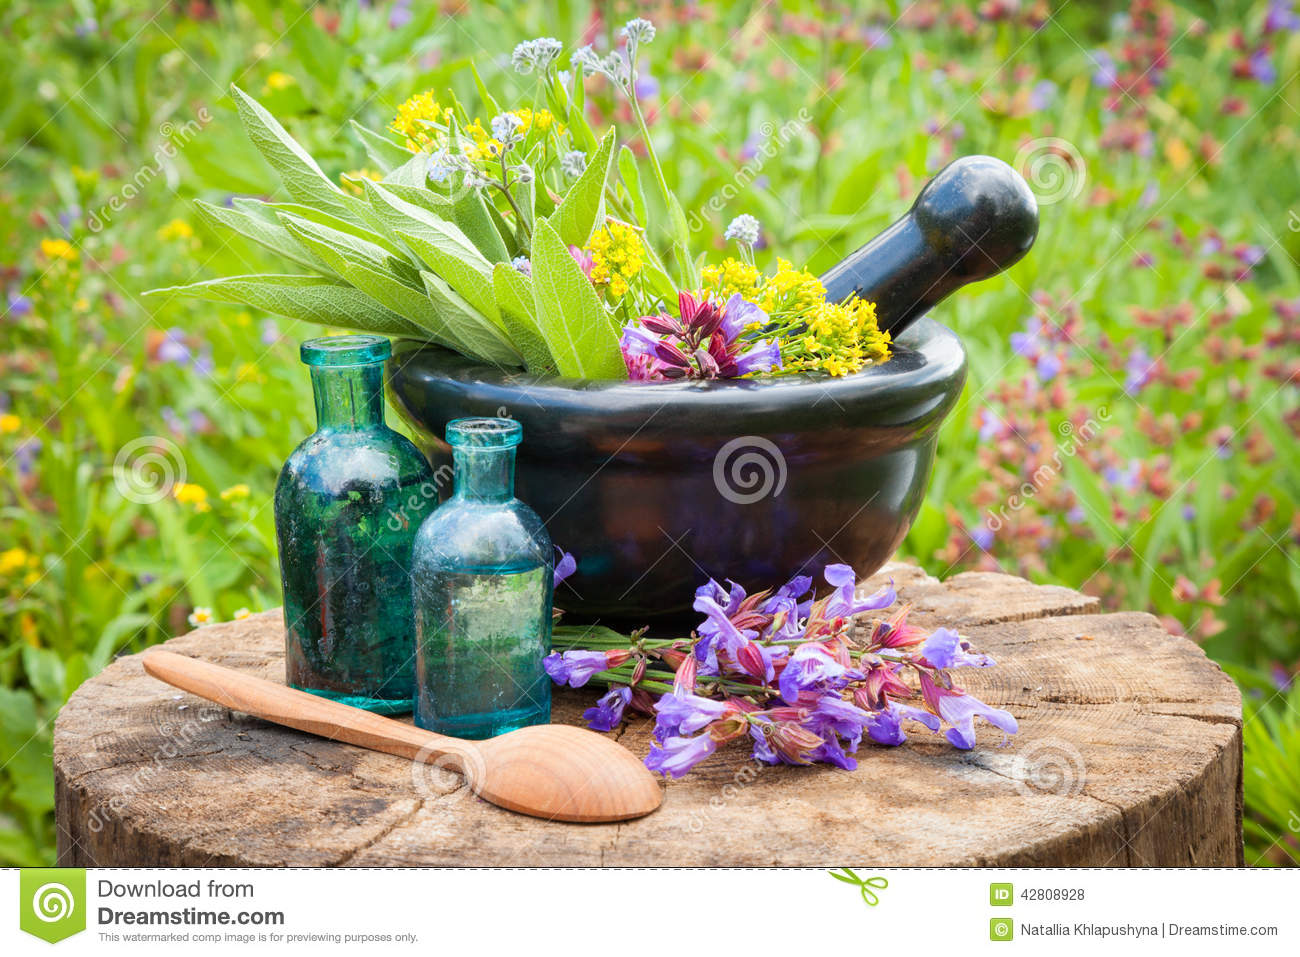 Black mortar with healing herbs and sage, glass bottle of oil